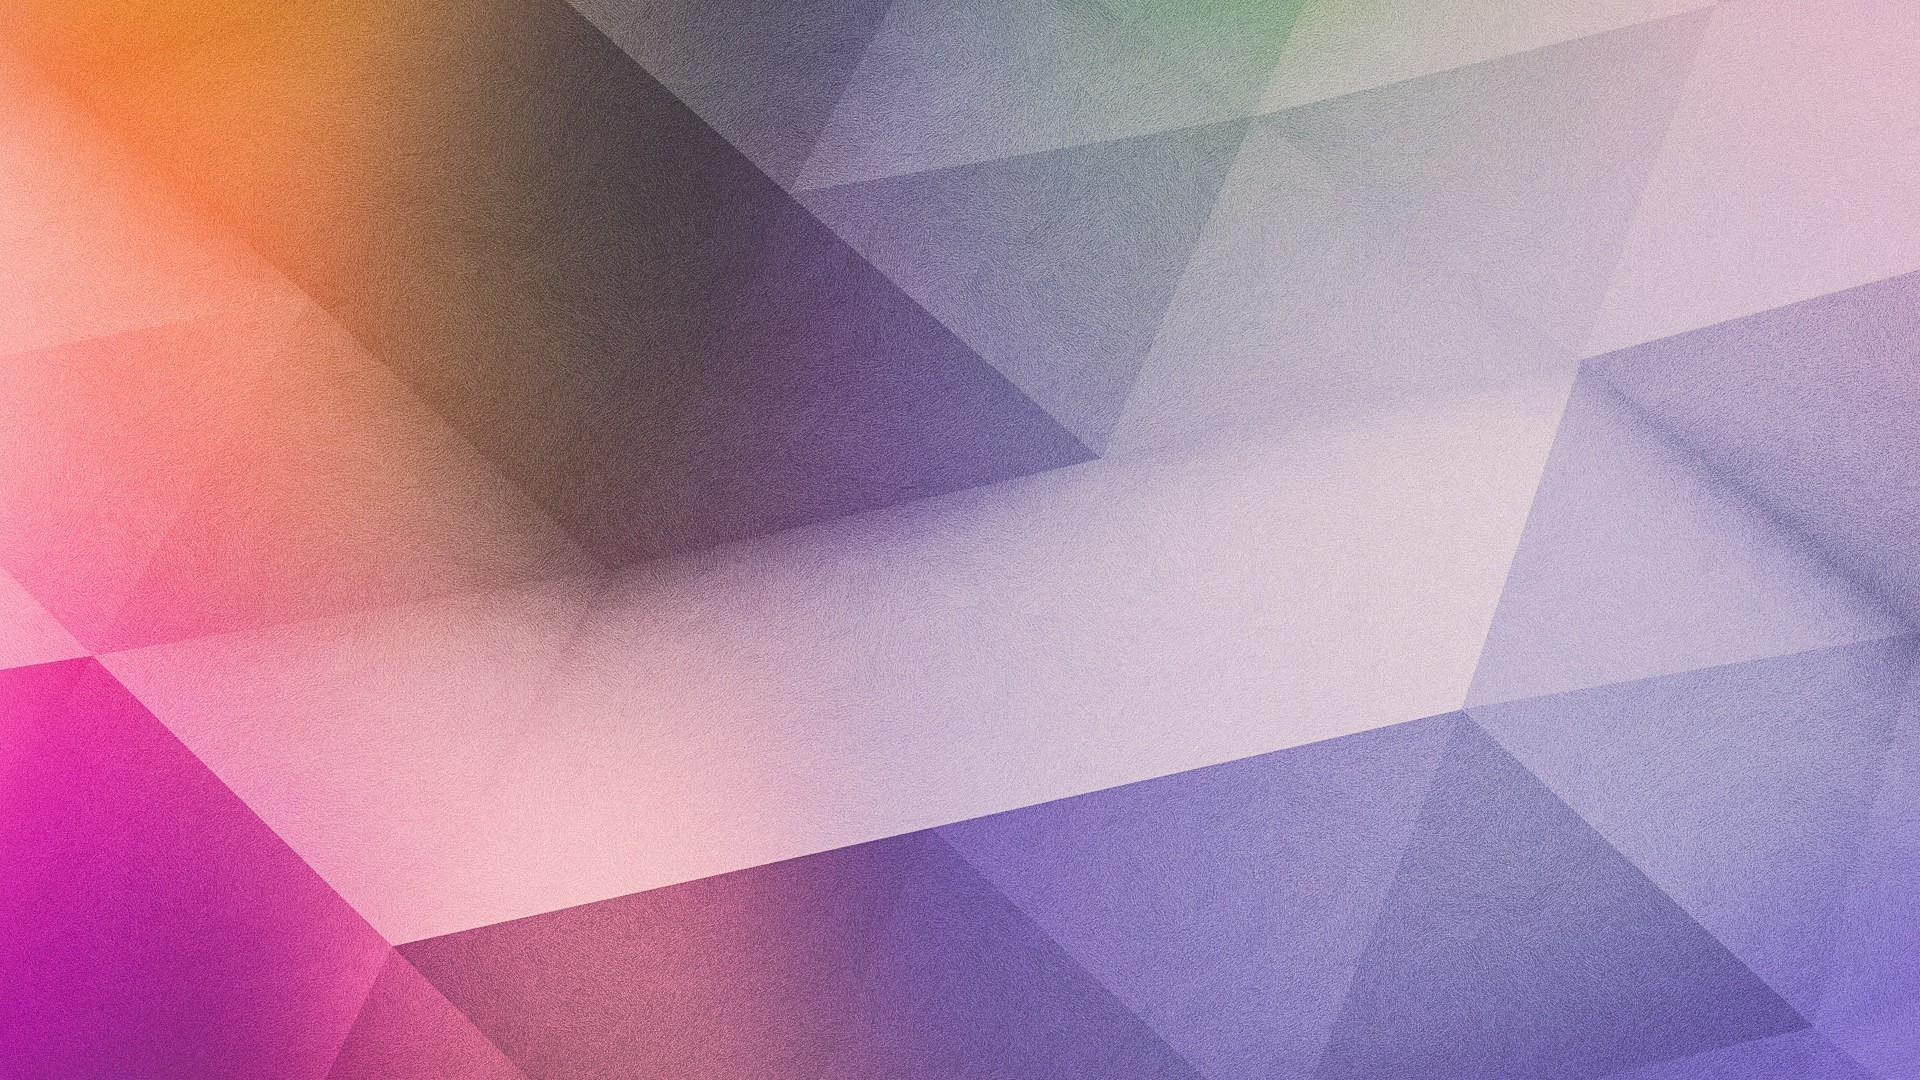 Purple Polygonal Abstract Background: Geometric Triangle Wallpaper (61+ Images